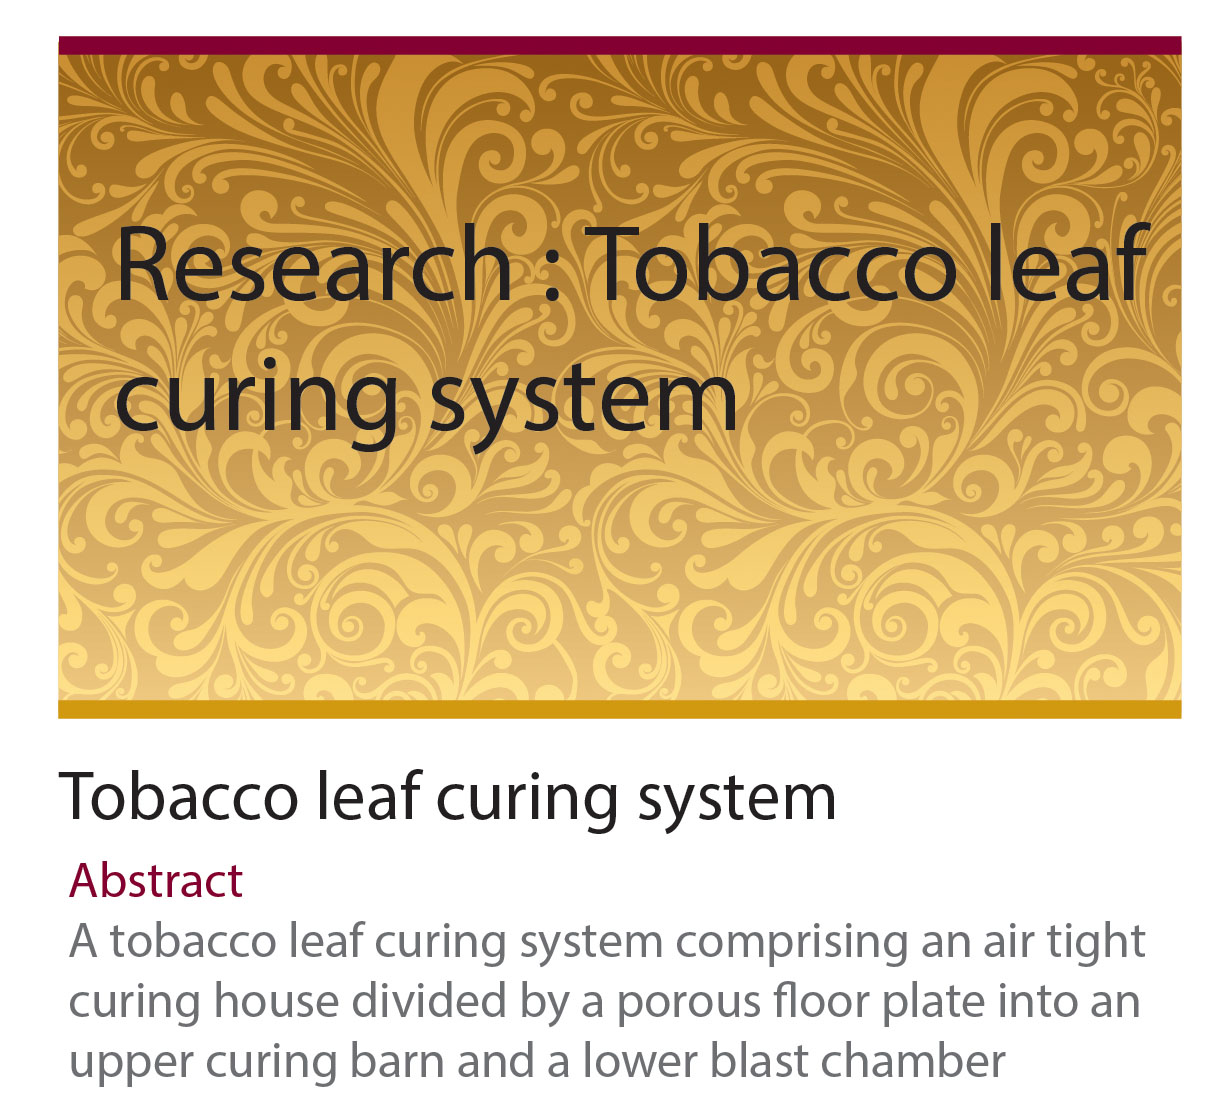 Research : Tobacco leaf curing system